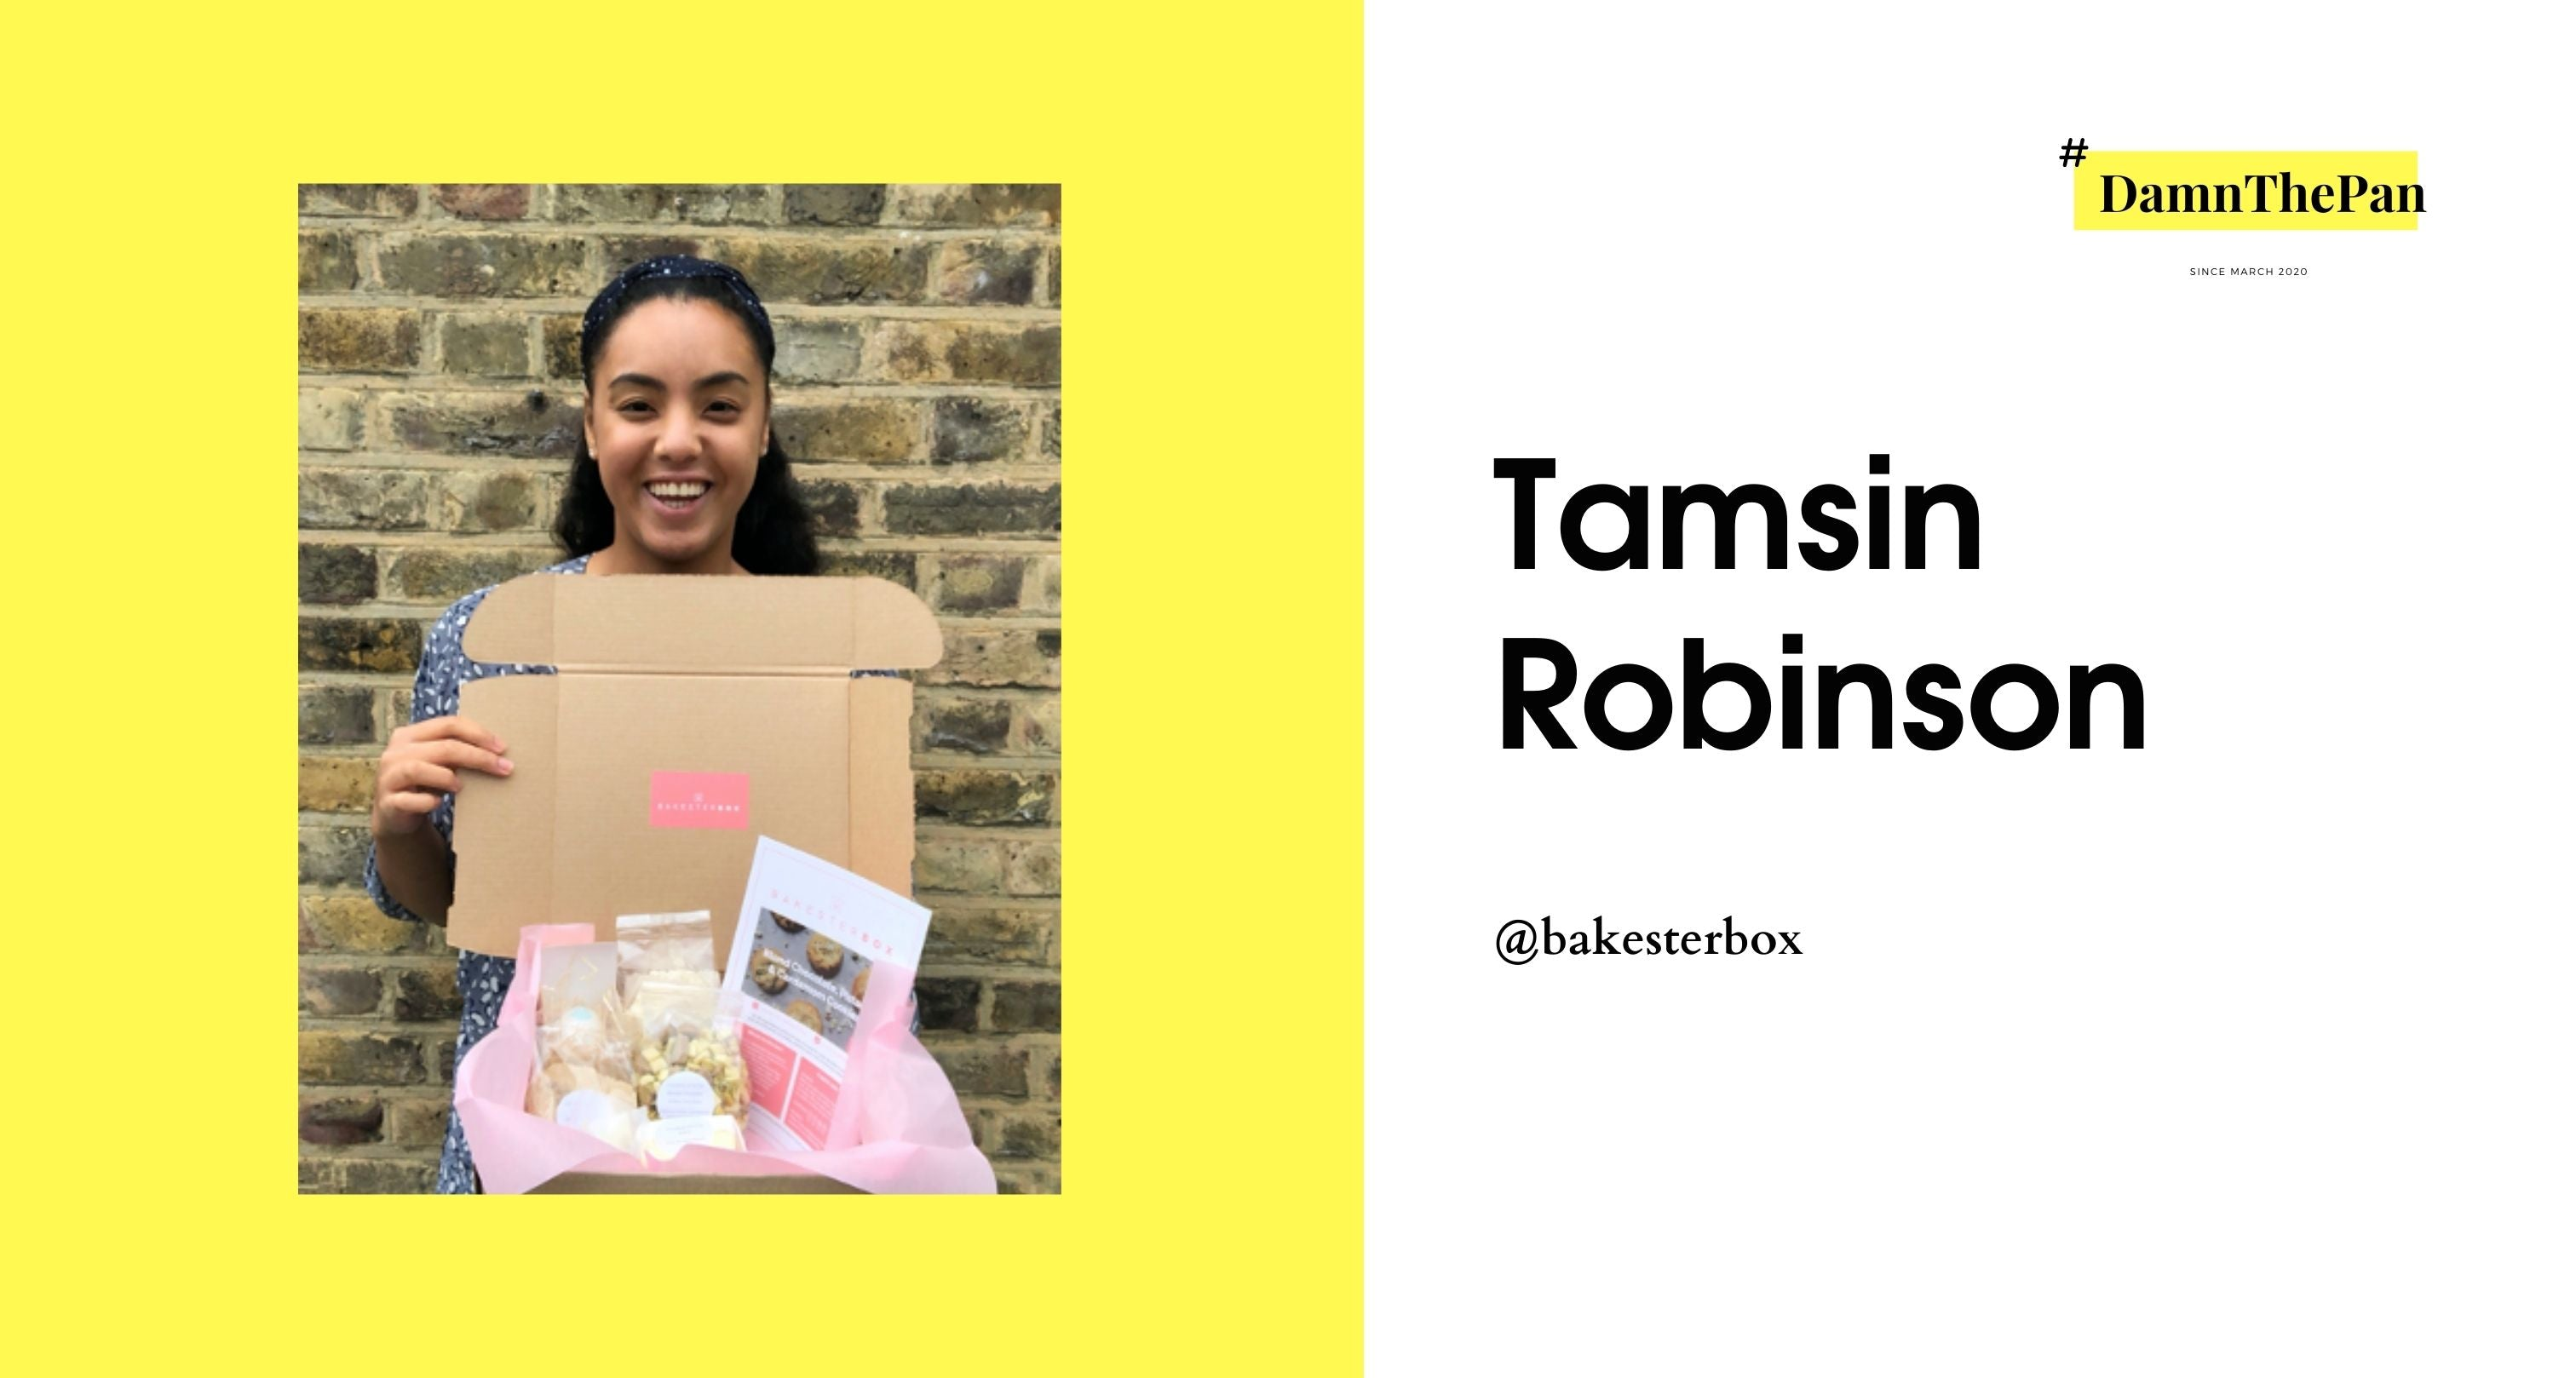 Tamsin Robinson Bakester Box in Damn the Pan #damnthepan